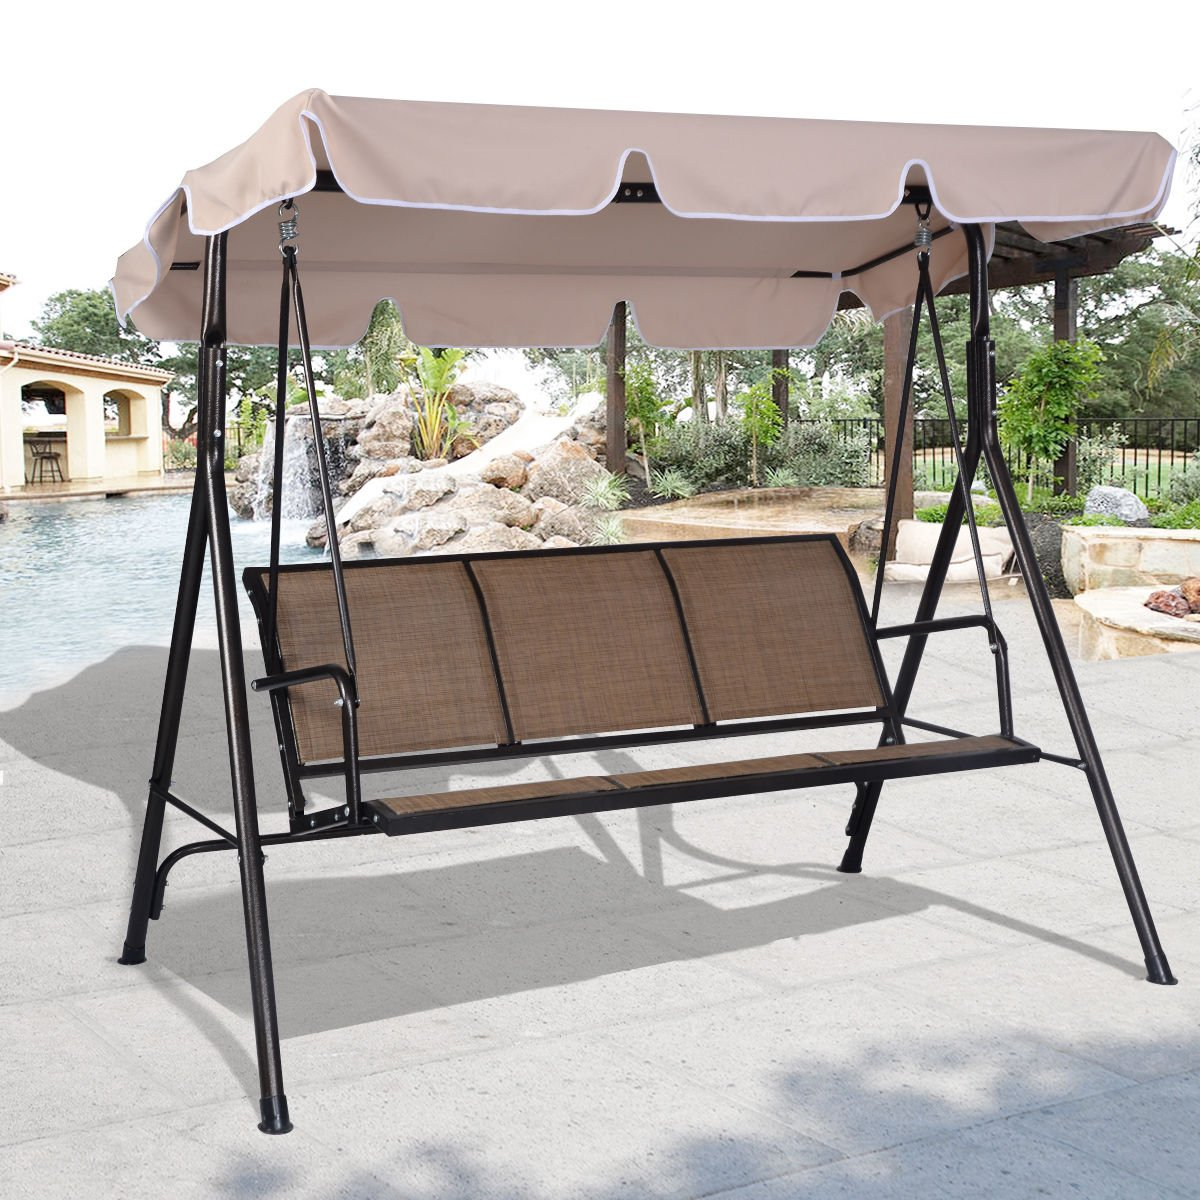 COSTWAY 3 Person Patio Swing Outdoor Canopy Awning Yard Furniture Hammock Steel .#GH45843 3468-T34562FD483923 by Nessagro